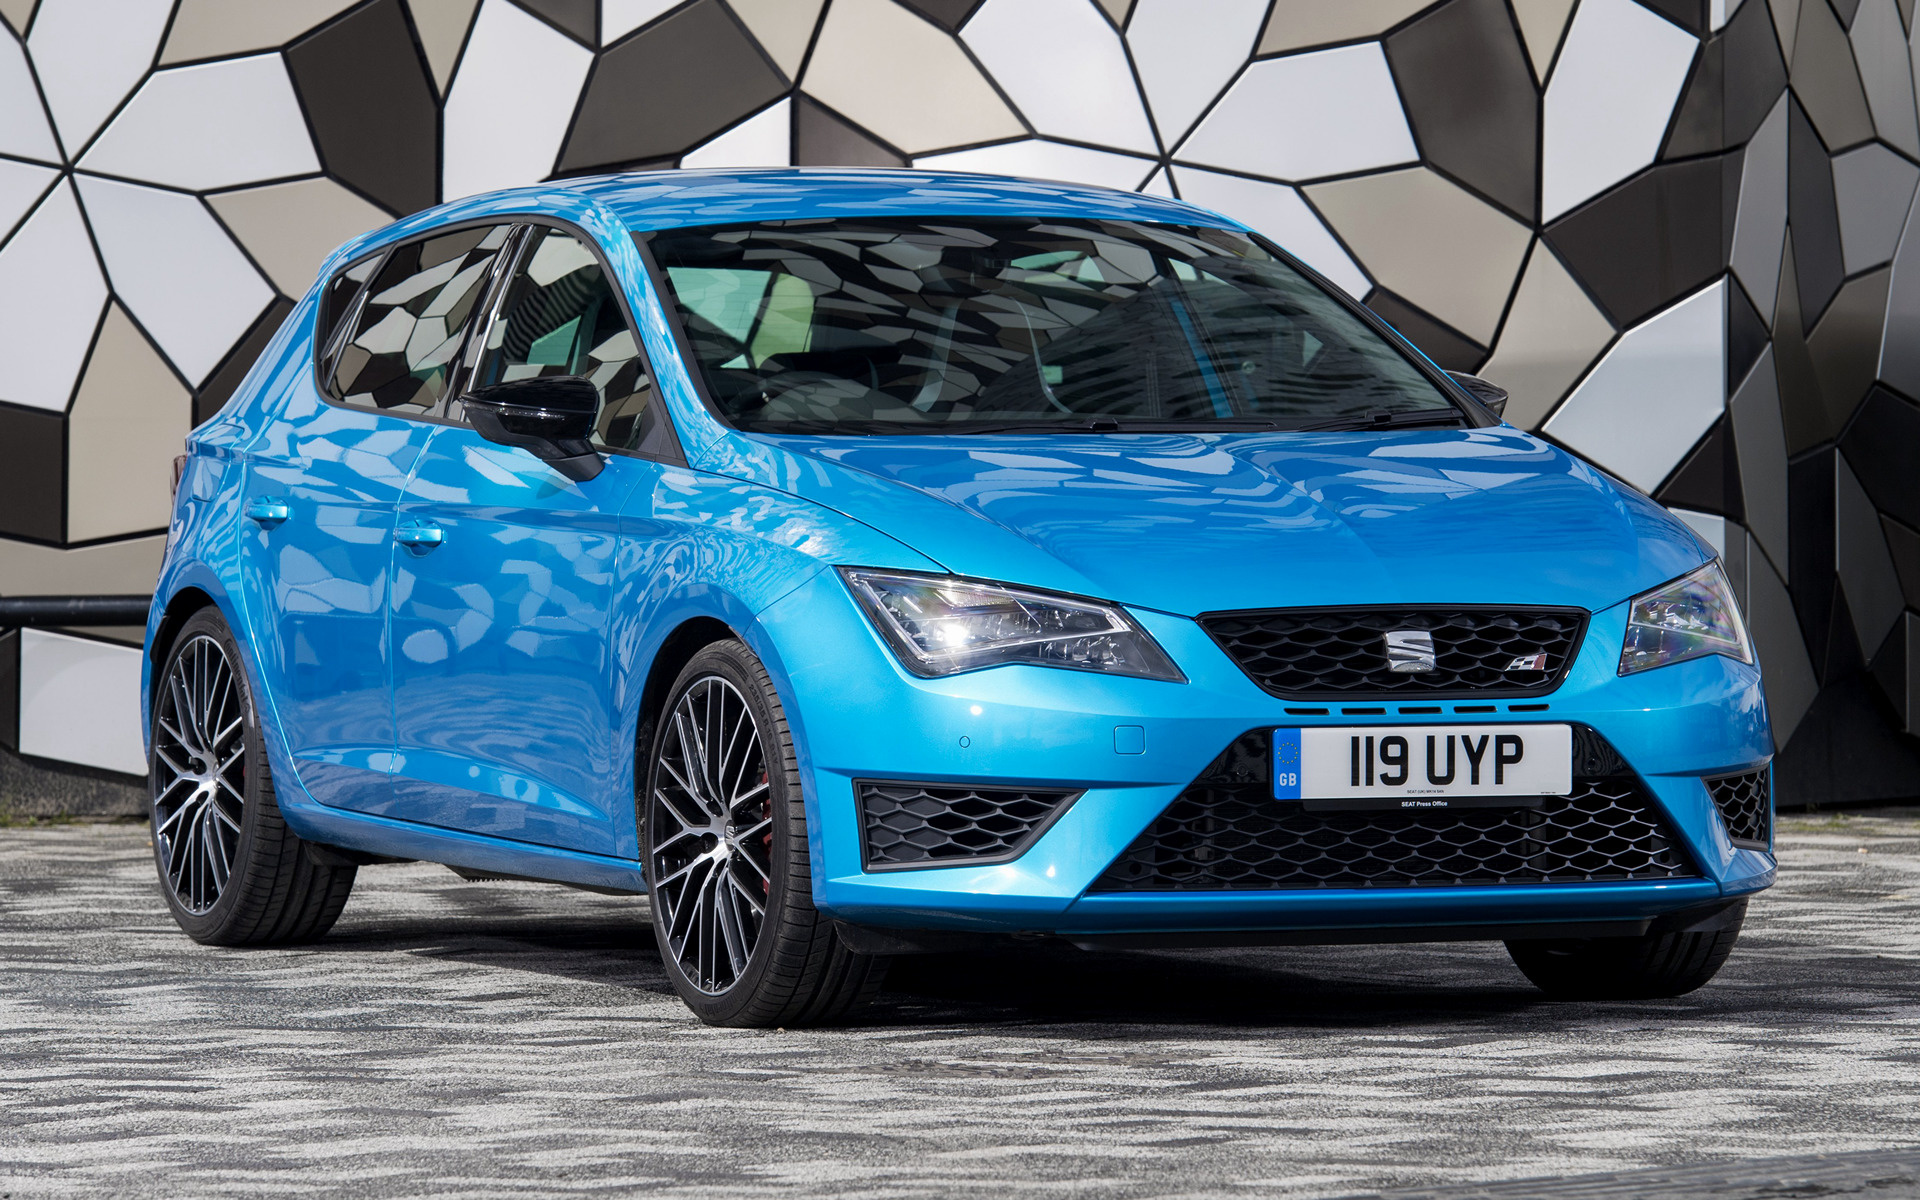 Ed Martin Gmc >> 2016 Seat Leon Cupra 290 (UK) - Wallpapers and HD Images ...